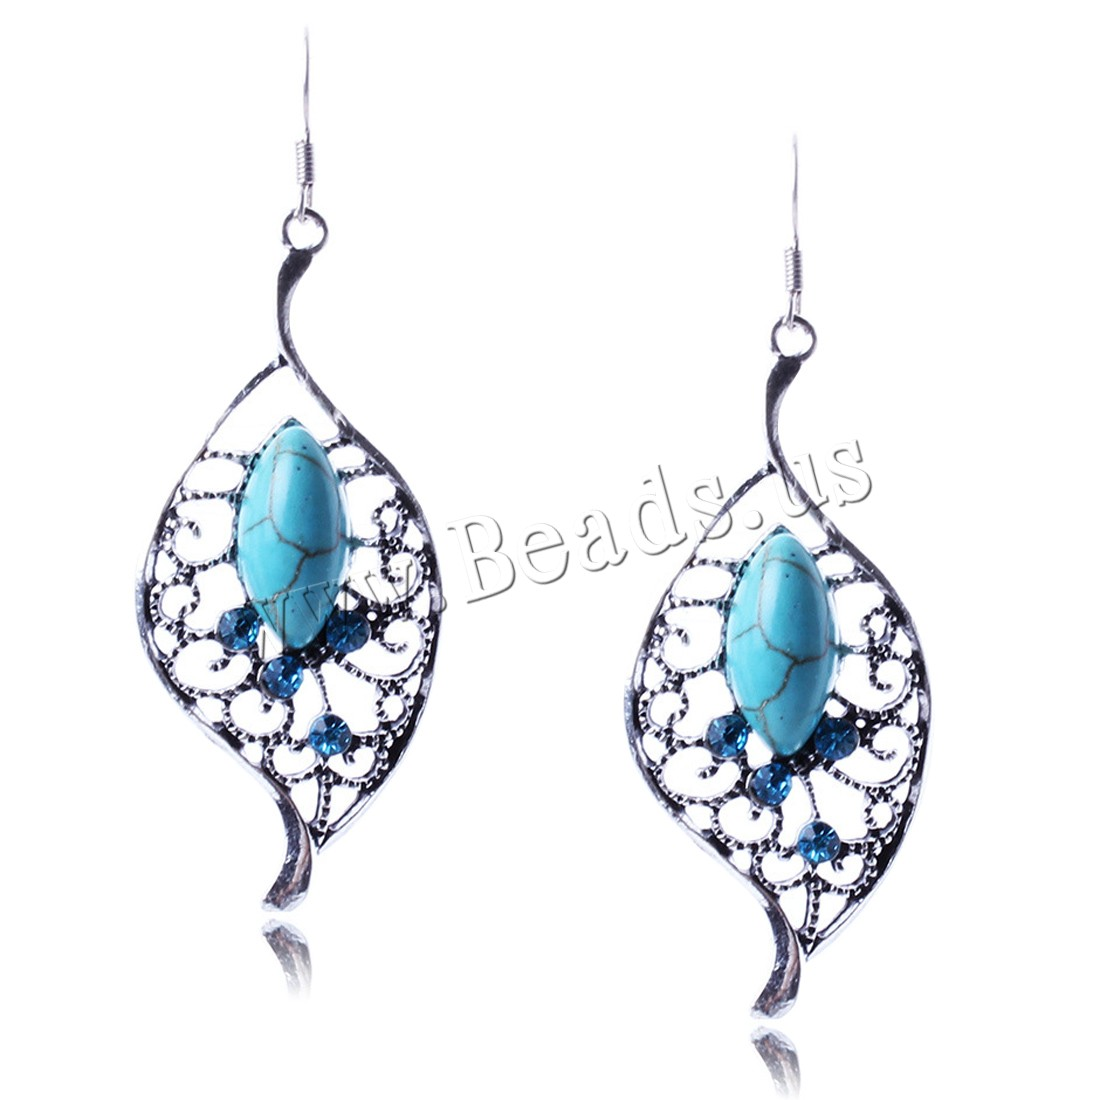 Buy Turquoise Earring Zinc Alloy iron earring hook antique silver color plated woman & rhinestone lead & cadmium free 55mm Sold Pair